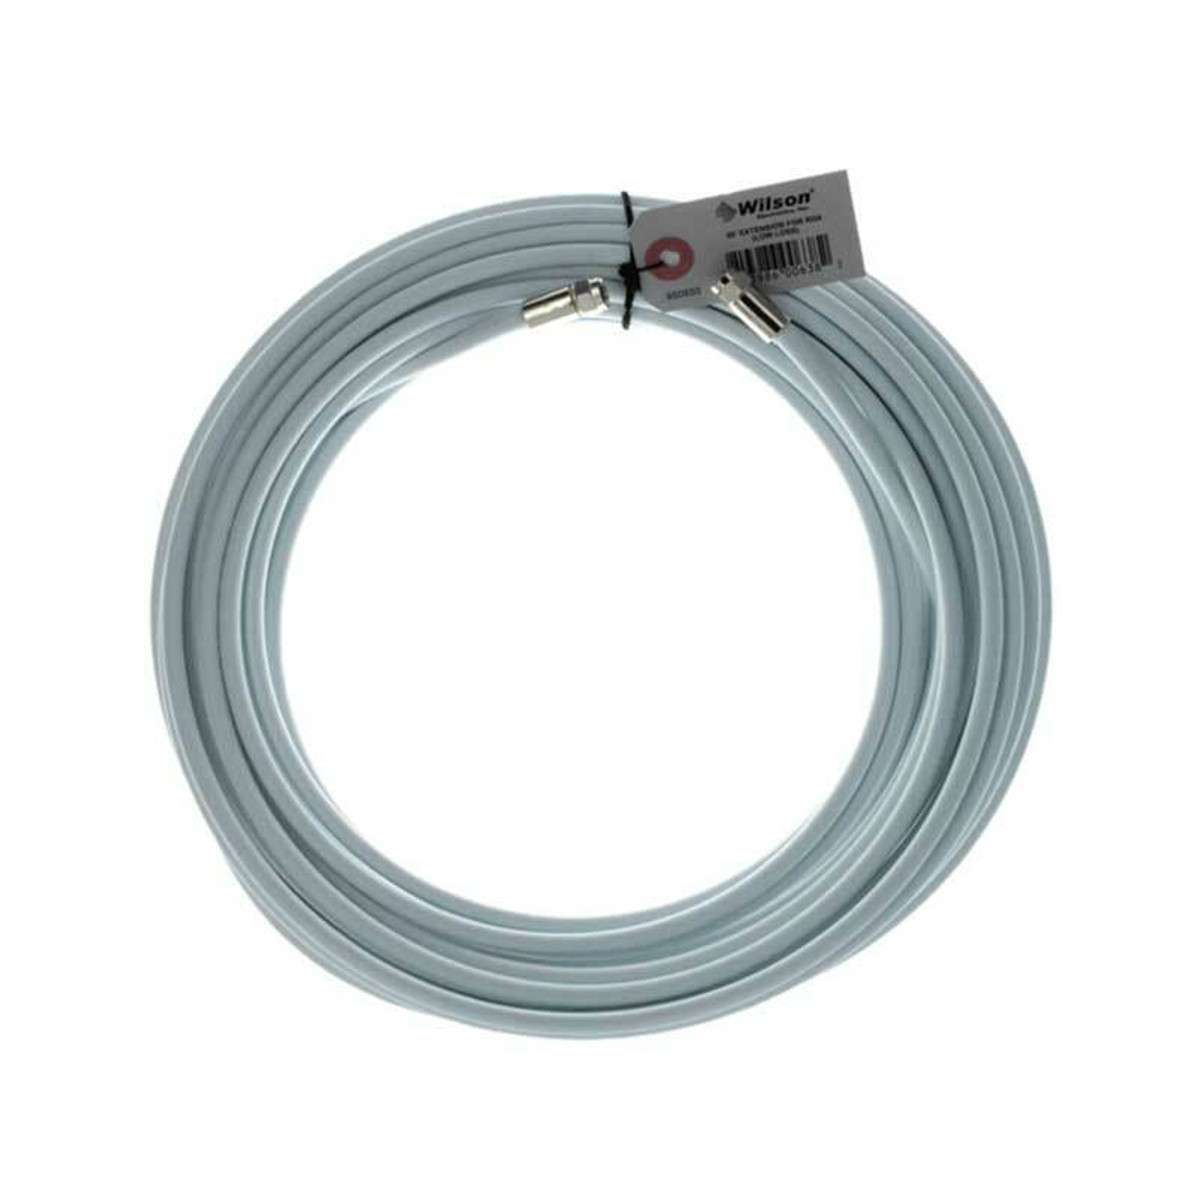 weBoost (Wilson) 950650 RG6 F-Male to F-Male | 50 ft White Cable